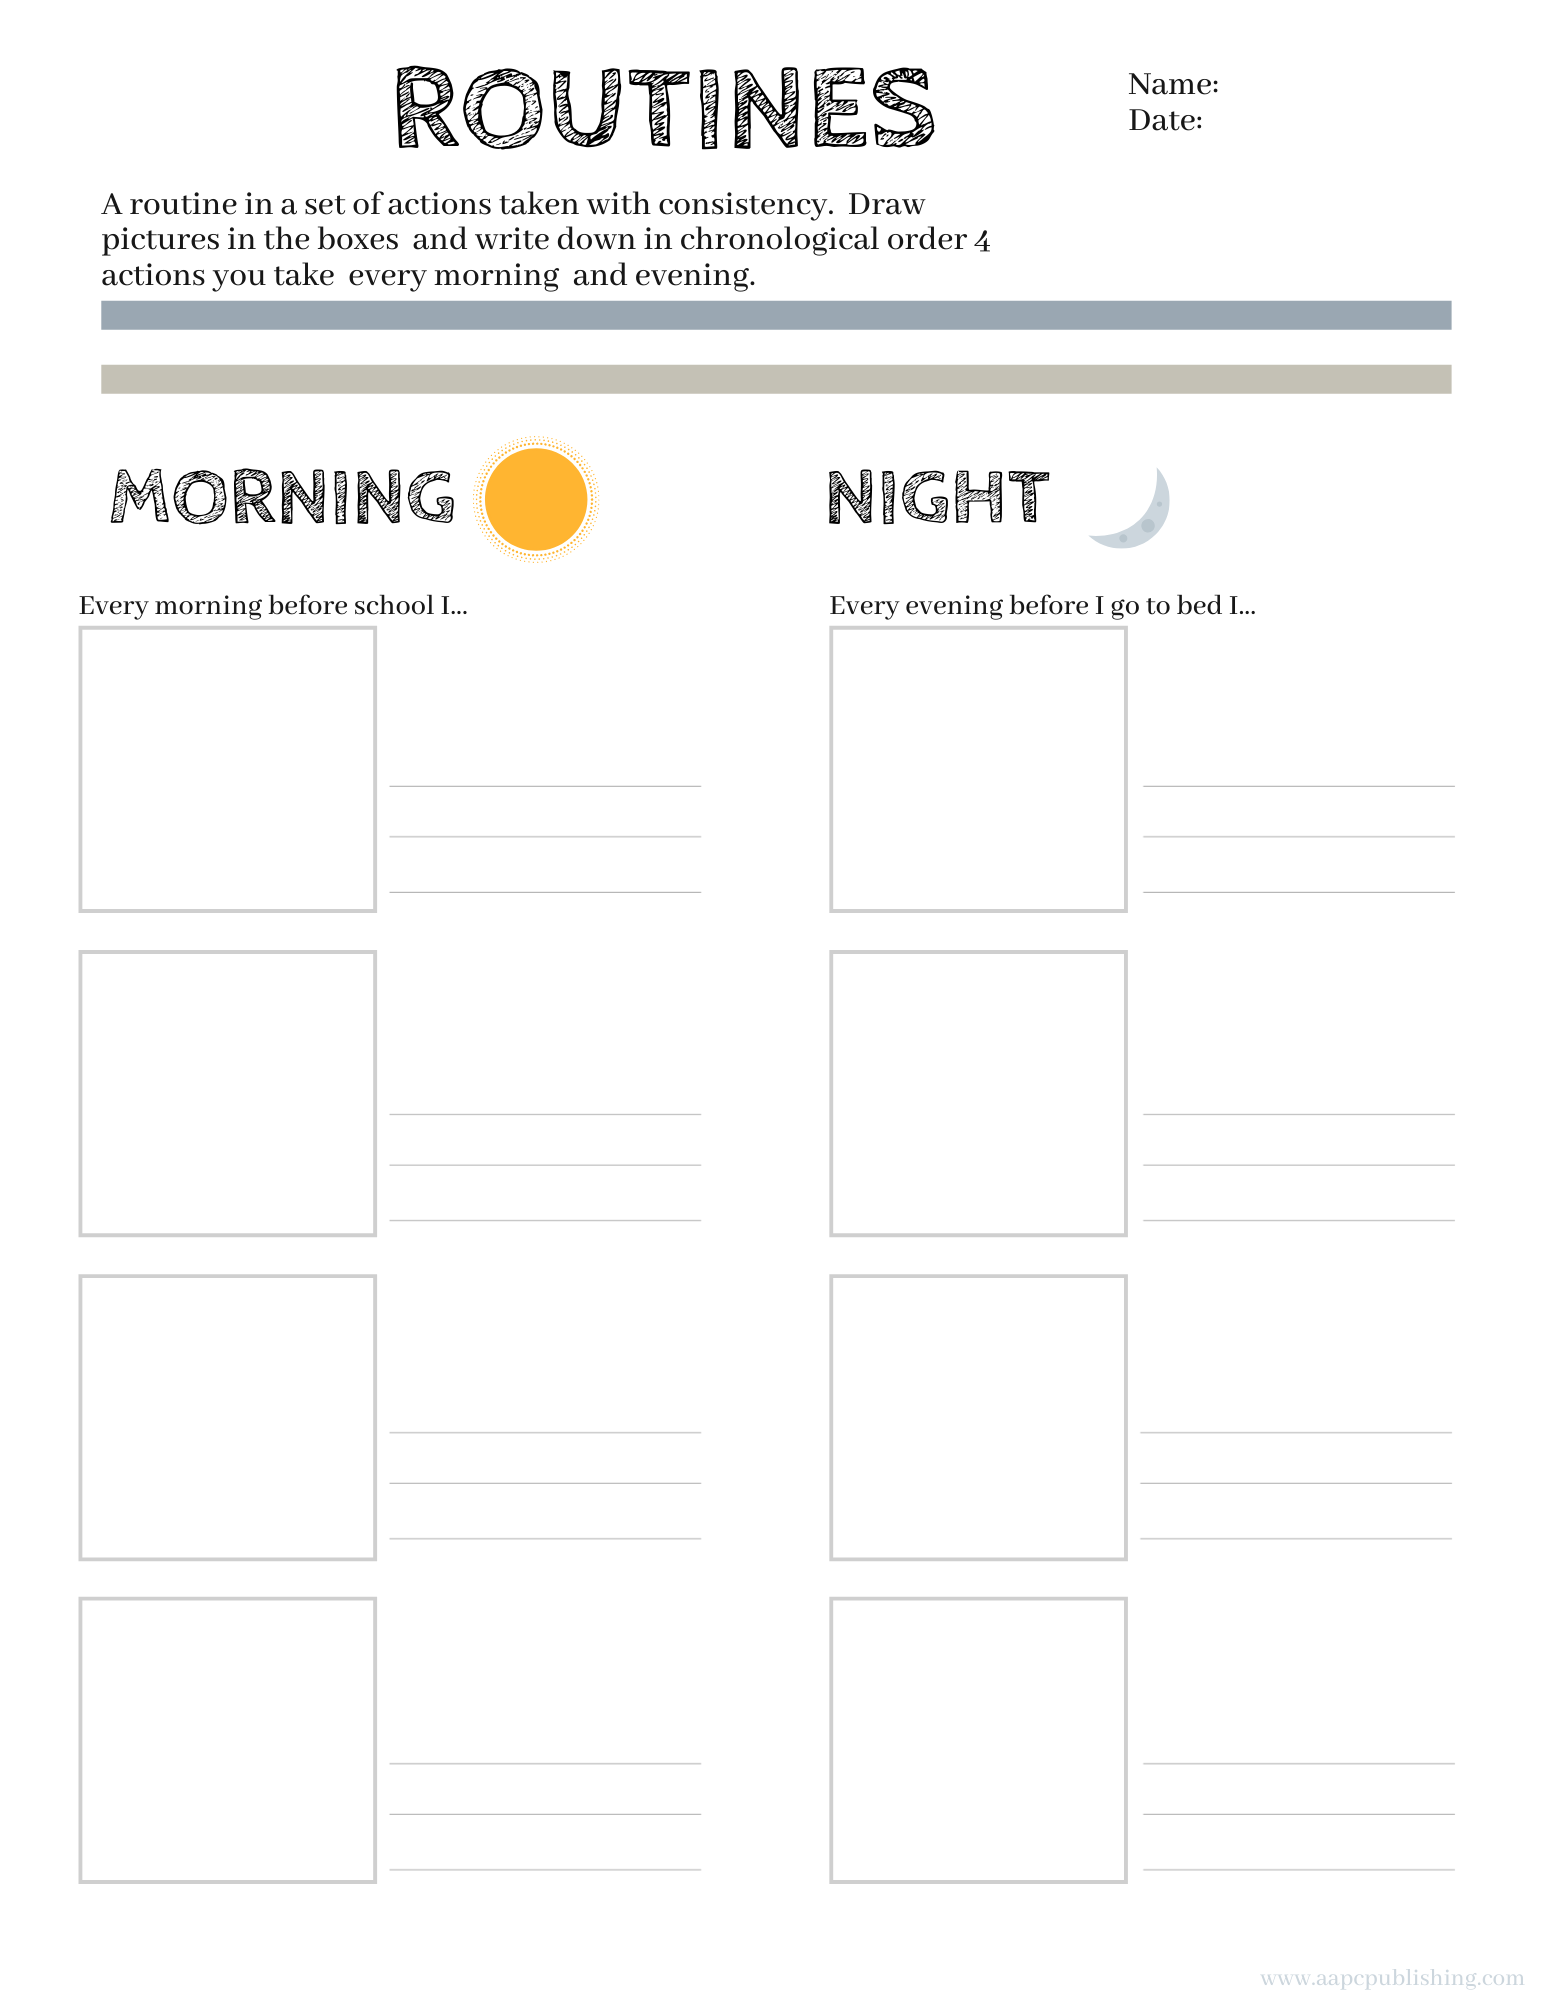 Routines Worksheet - Free Printable - AAPC Publishing